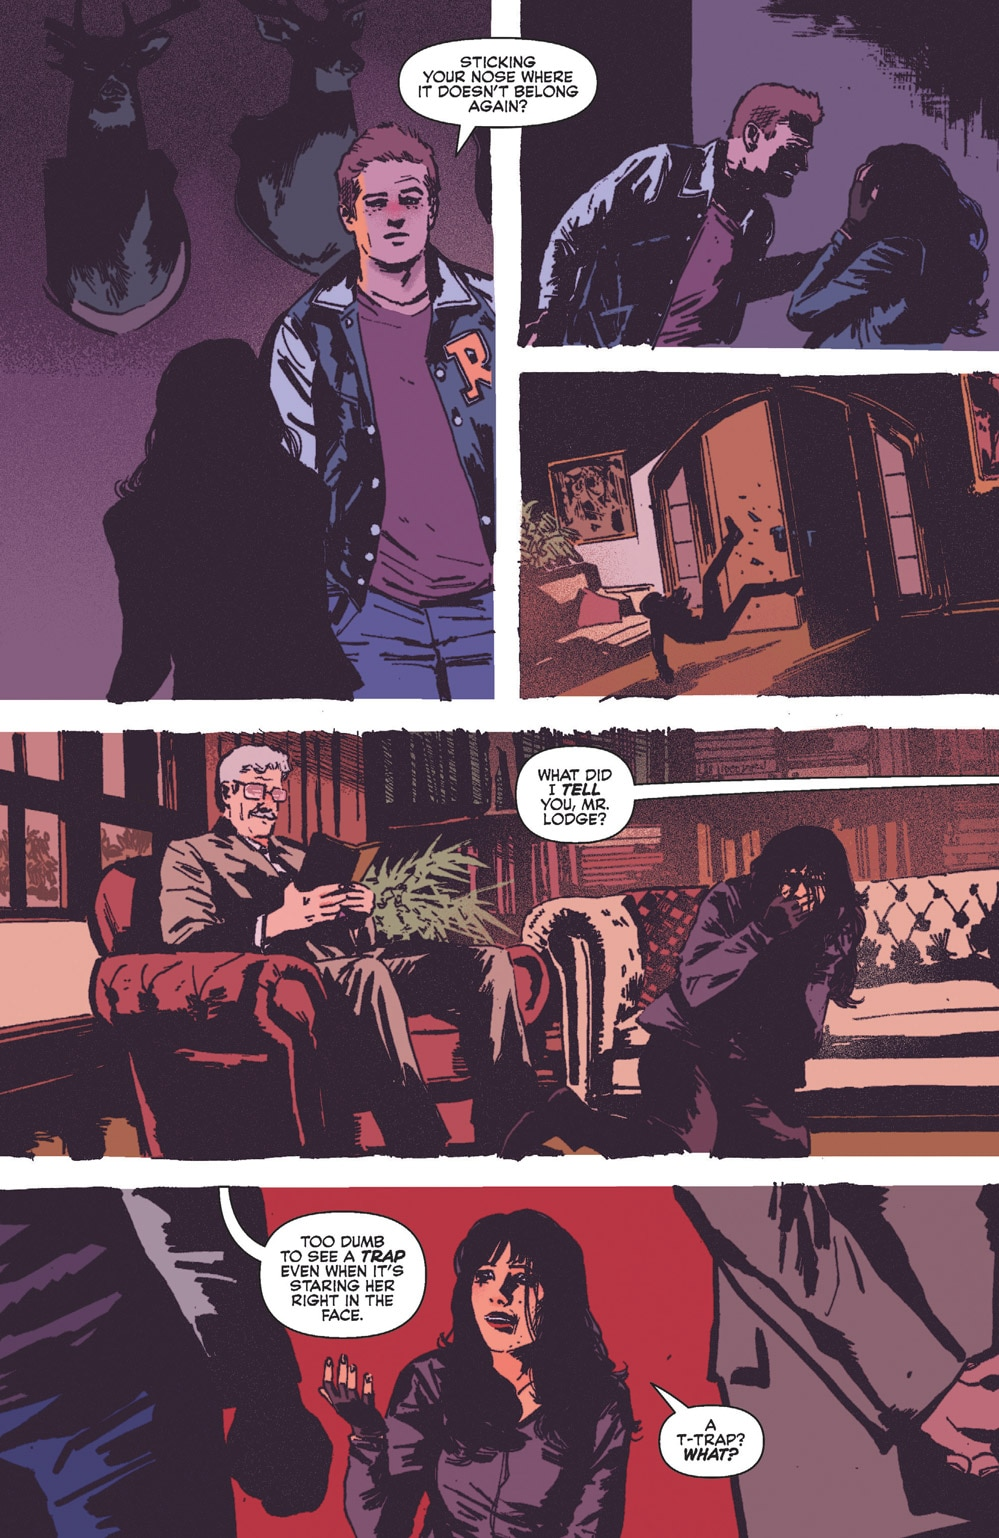 Vampironica 05 8 - Exclusive VAMPIRONICA #5 Preview is a Descent Into a Pure Nightmare